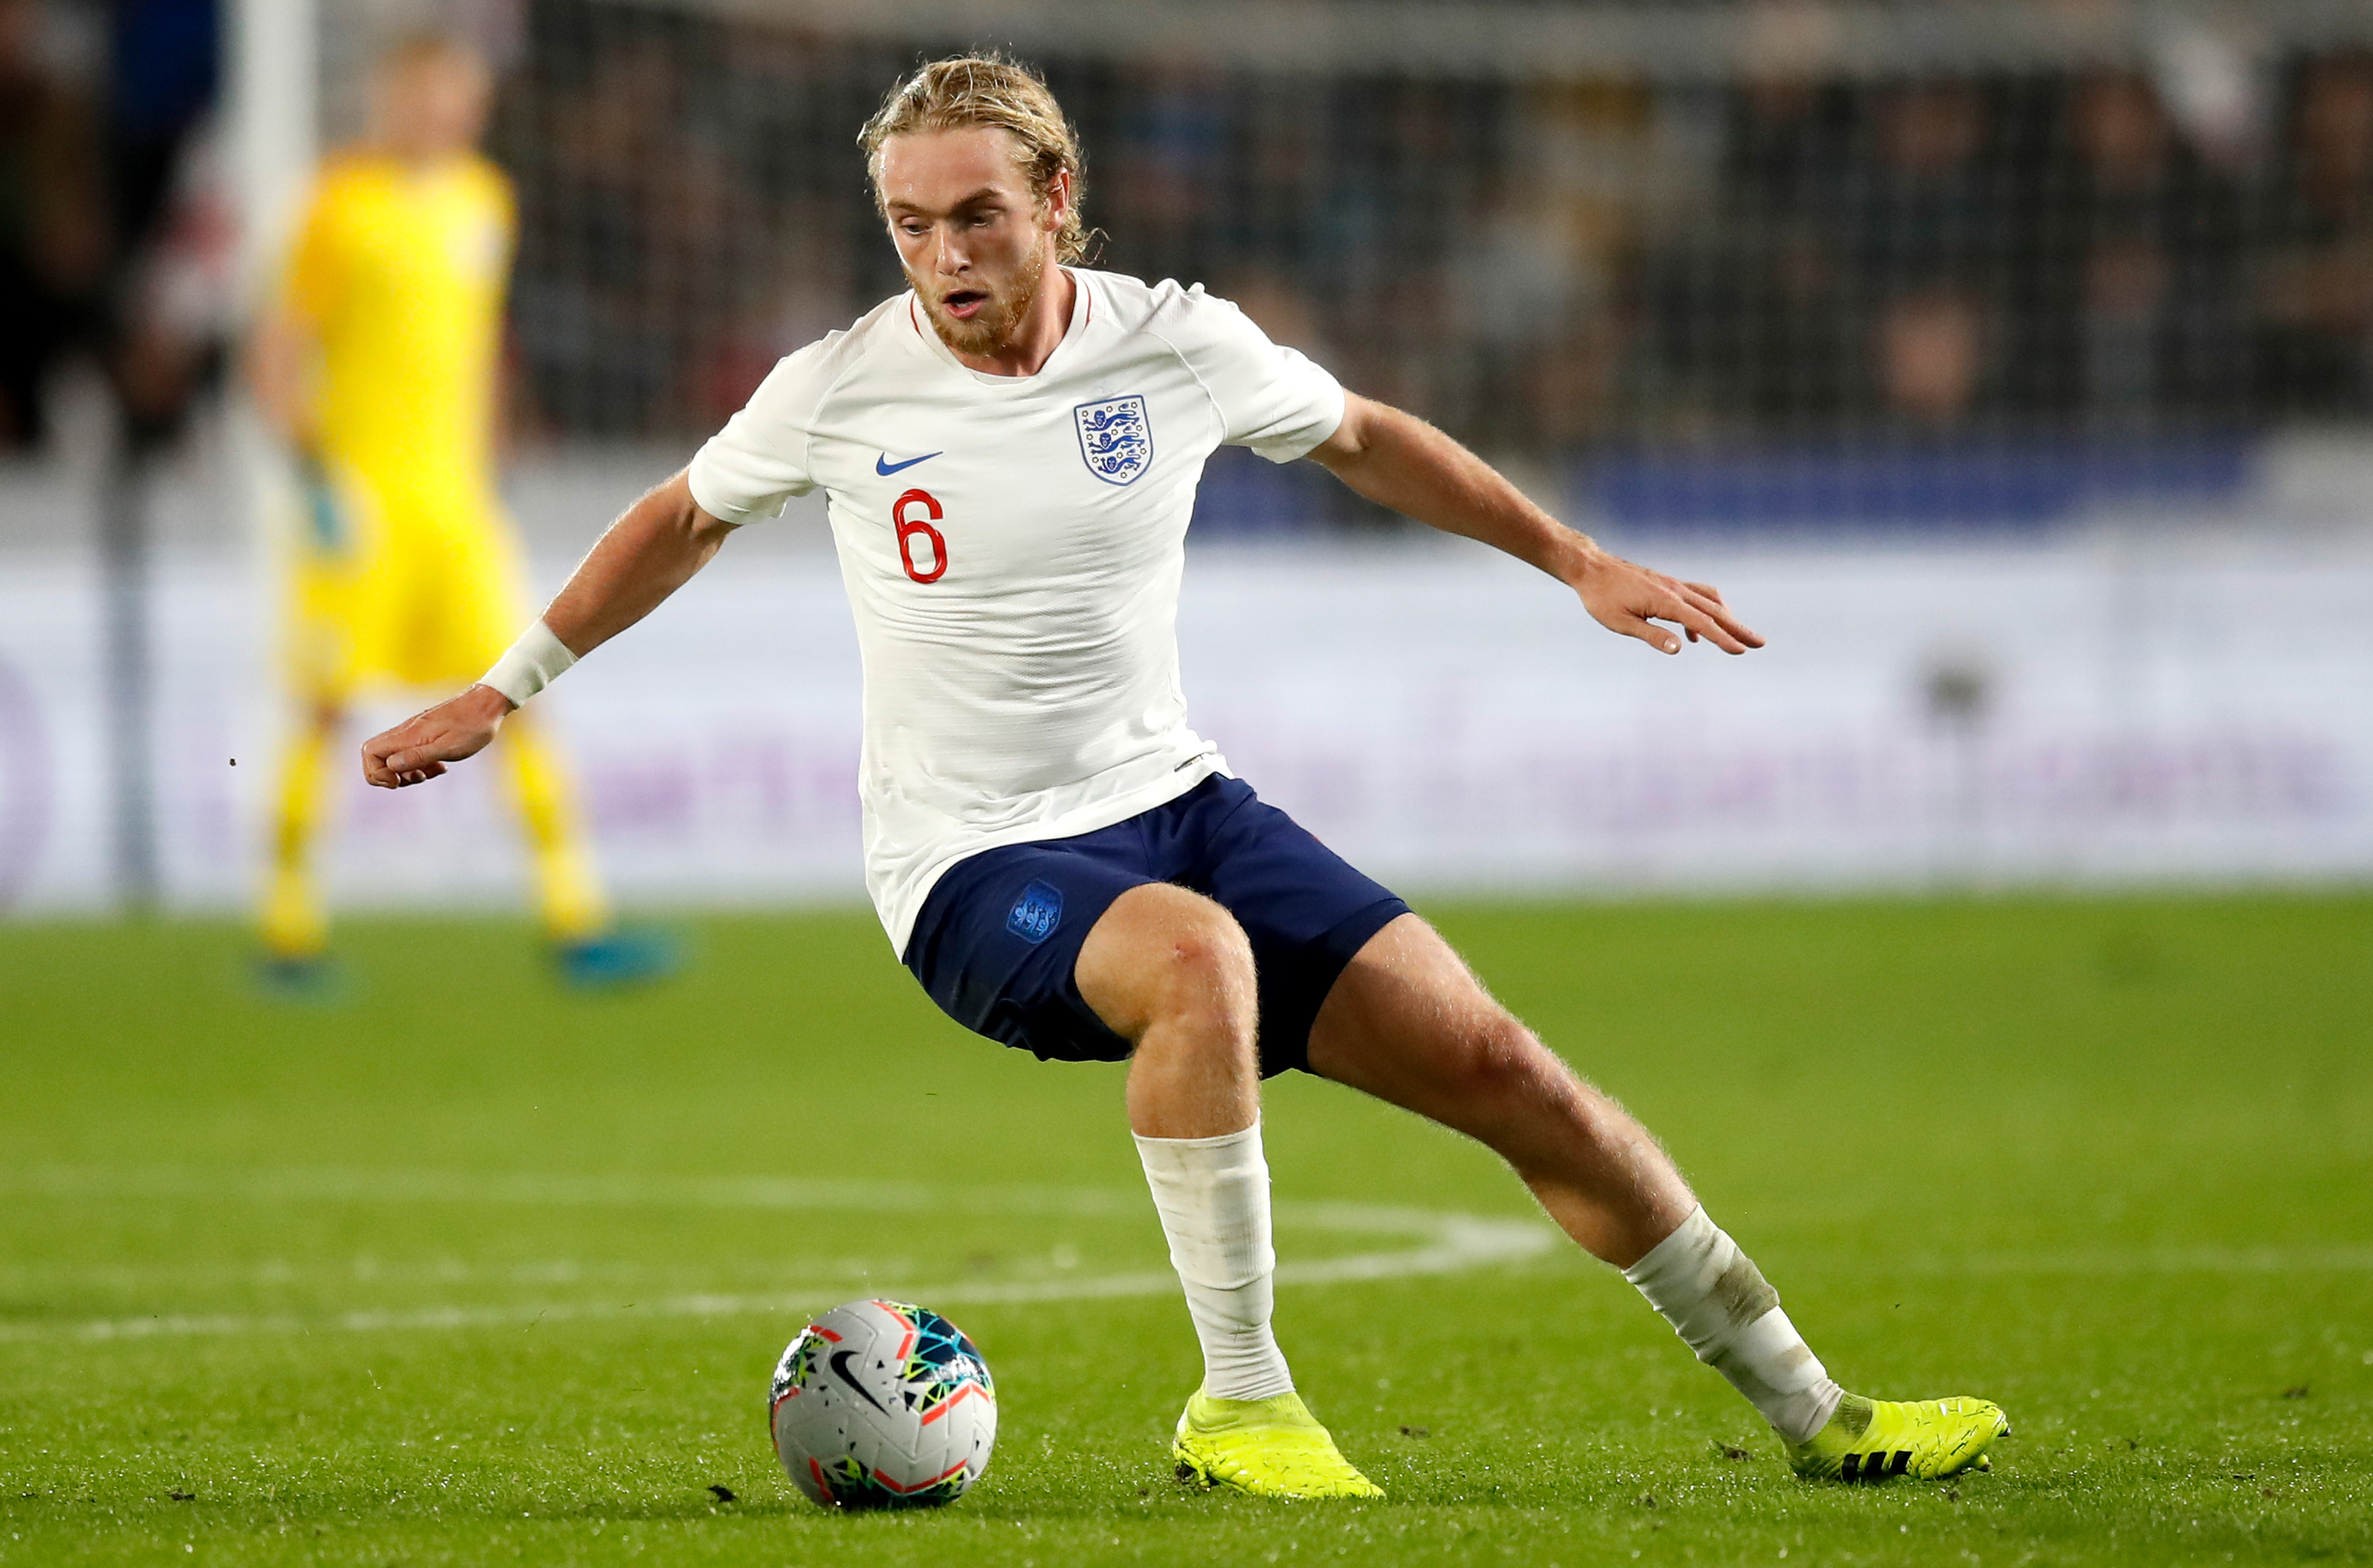 Marco Silva has a clear plan for Tom Davies